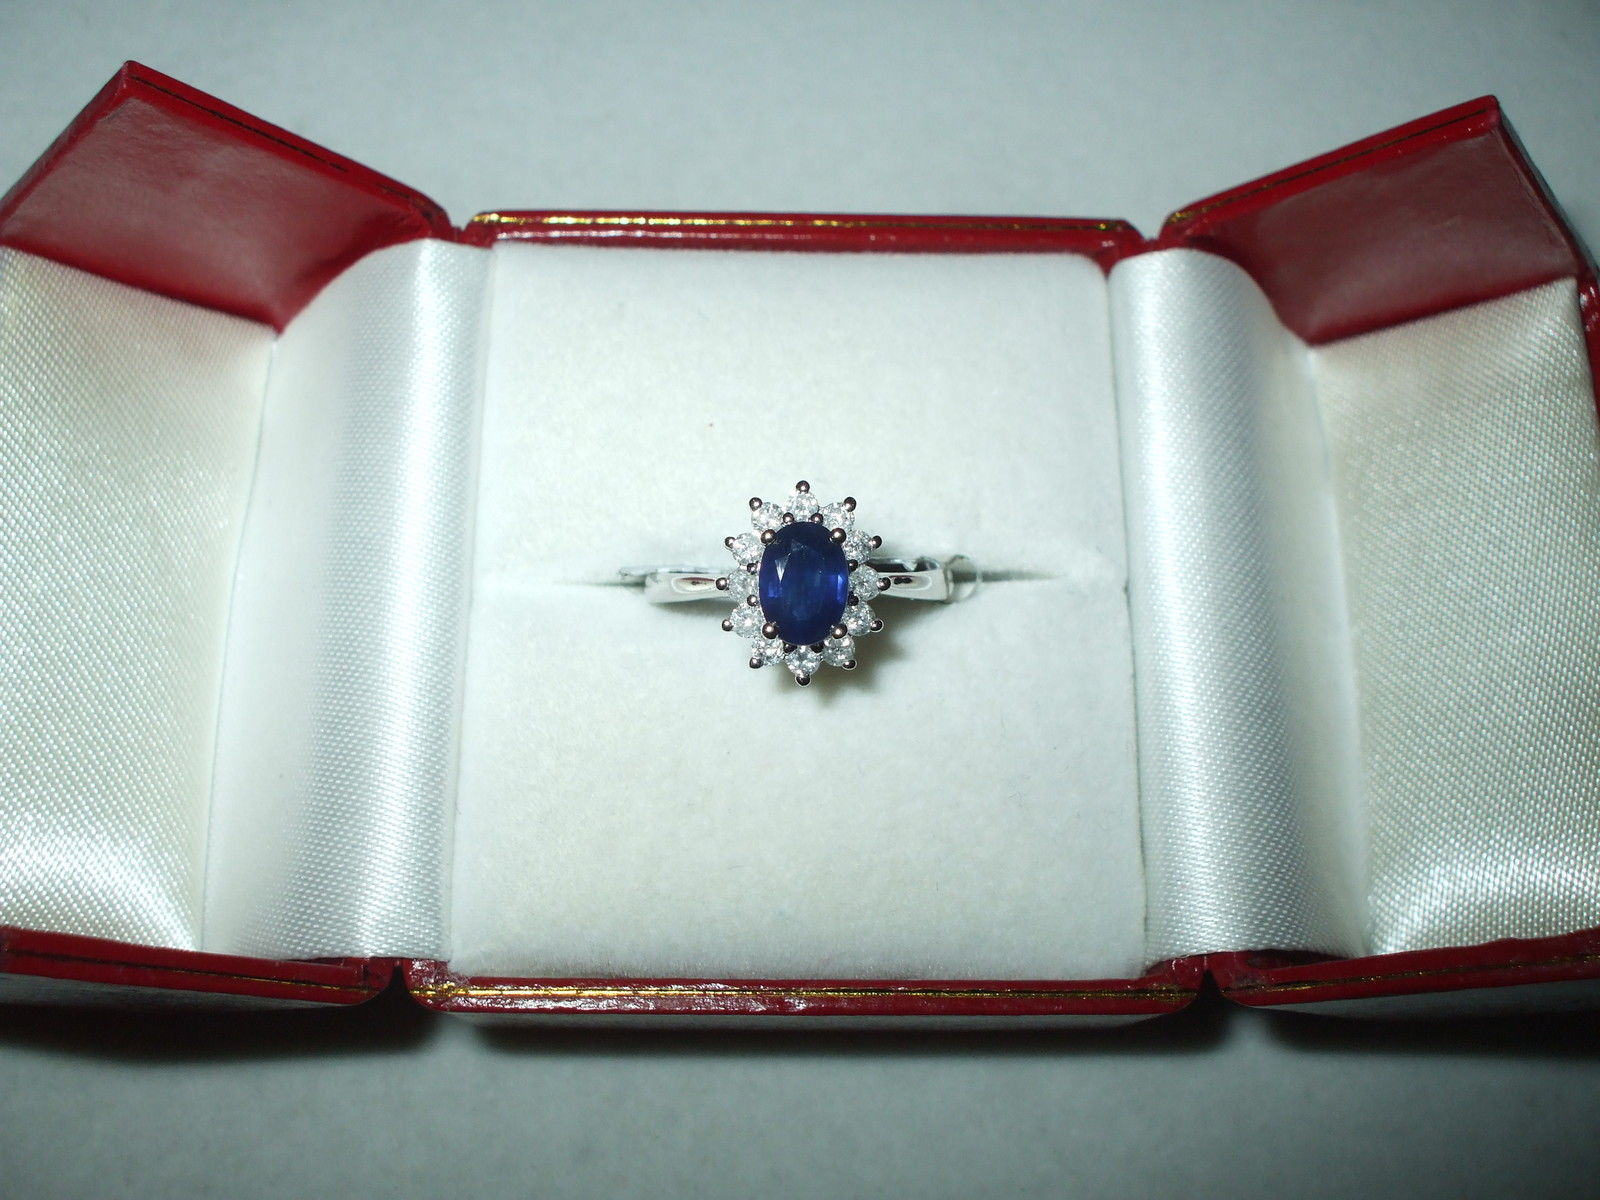 Genuine 1.02 ct Blue Sapphire & Diamond Ring 14K white gold $1050 NWT